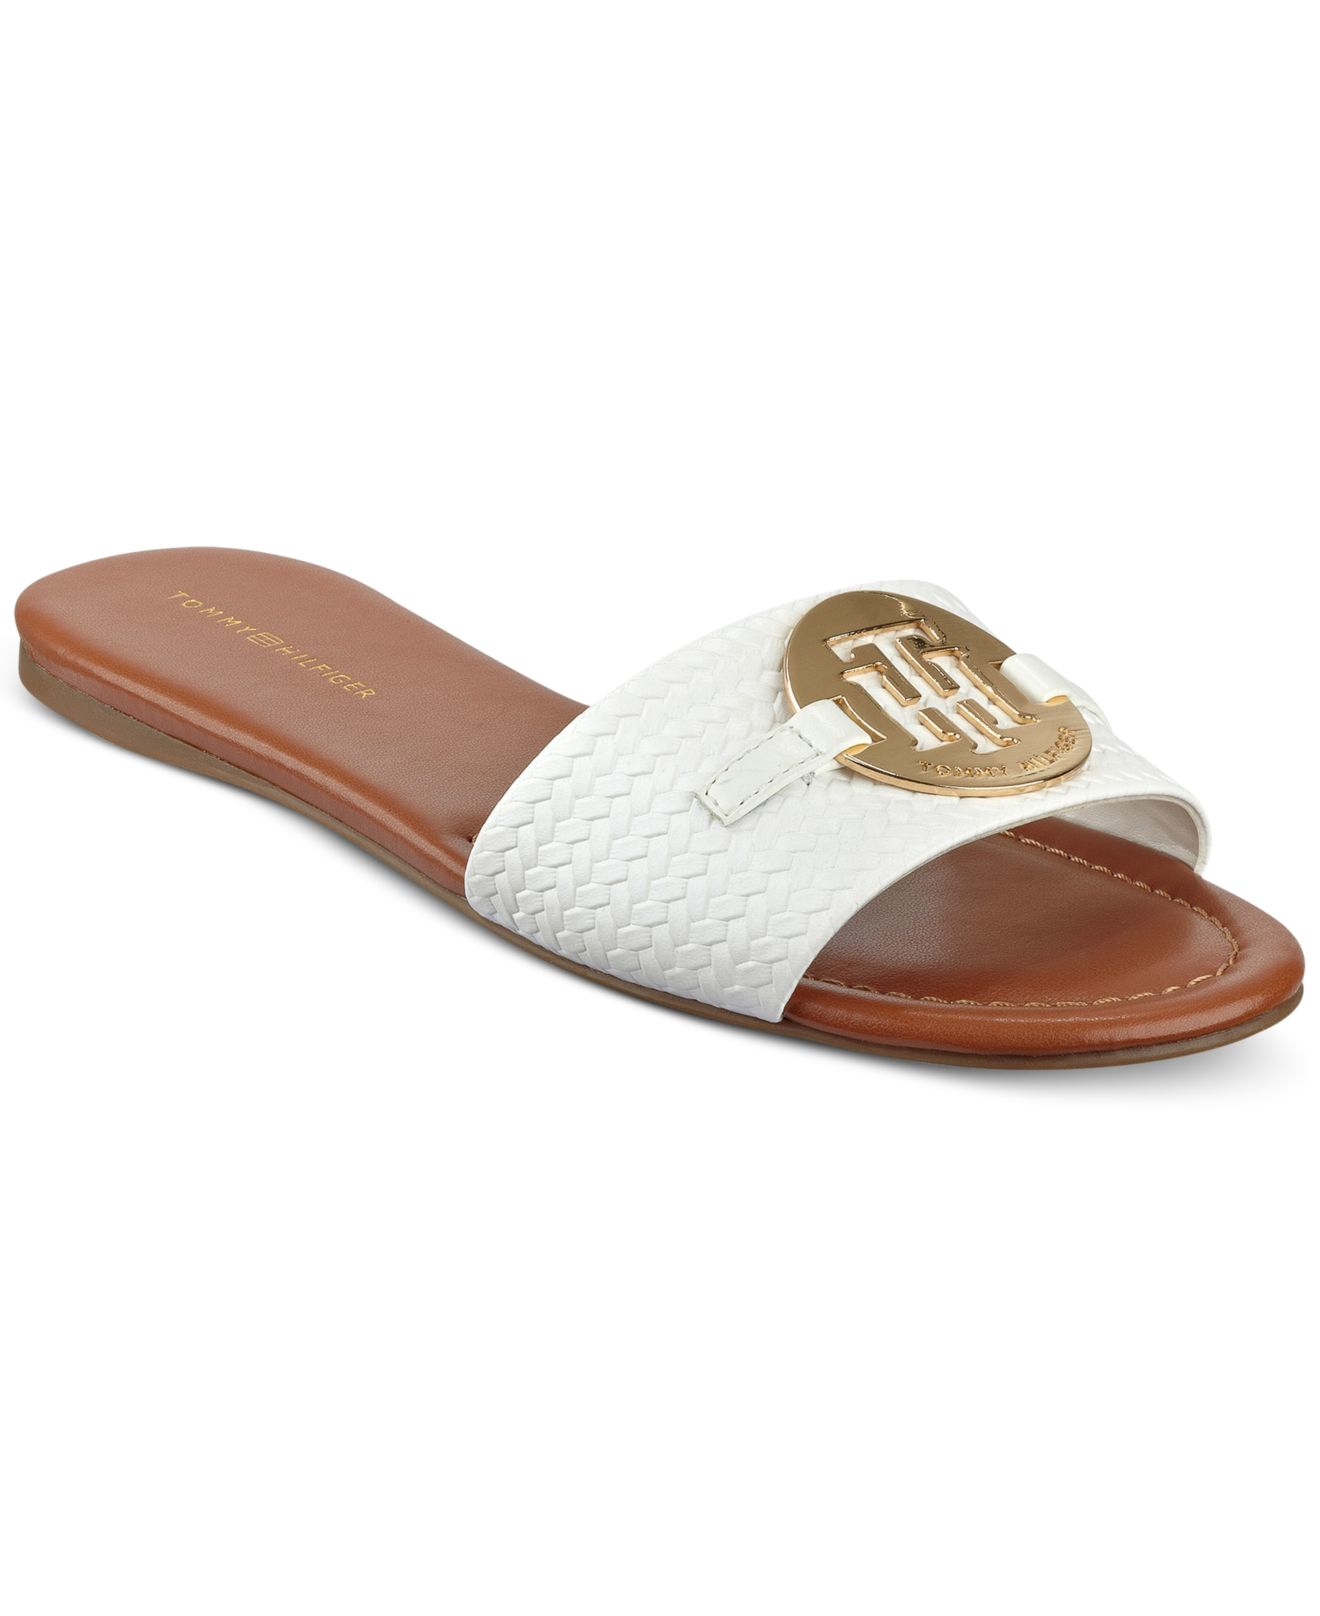 16009dd7cde69 Lyst - Tommy Hilfiger Fabre Logo Slide-on Sandals in White